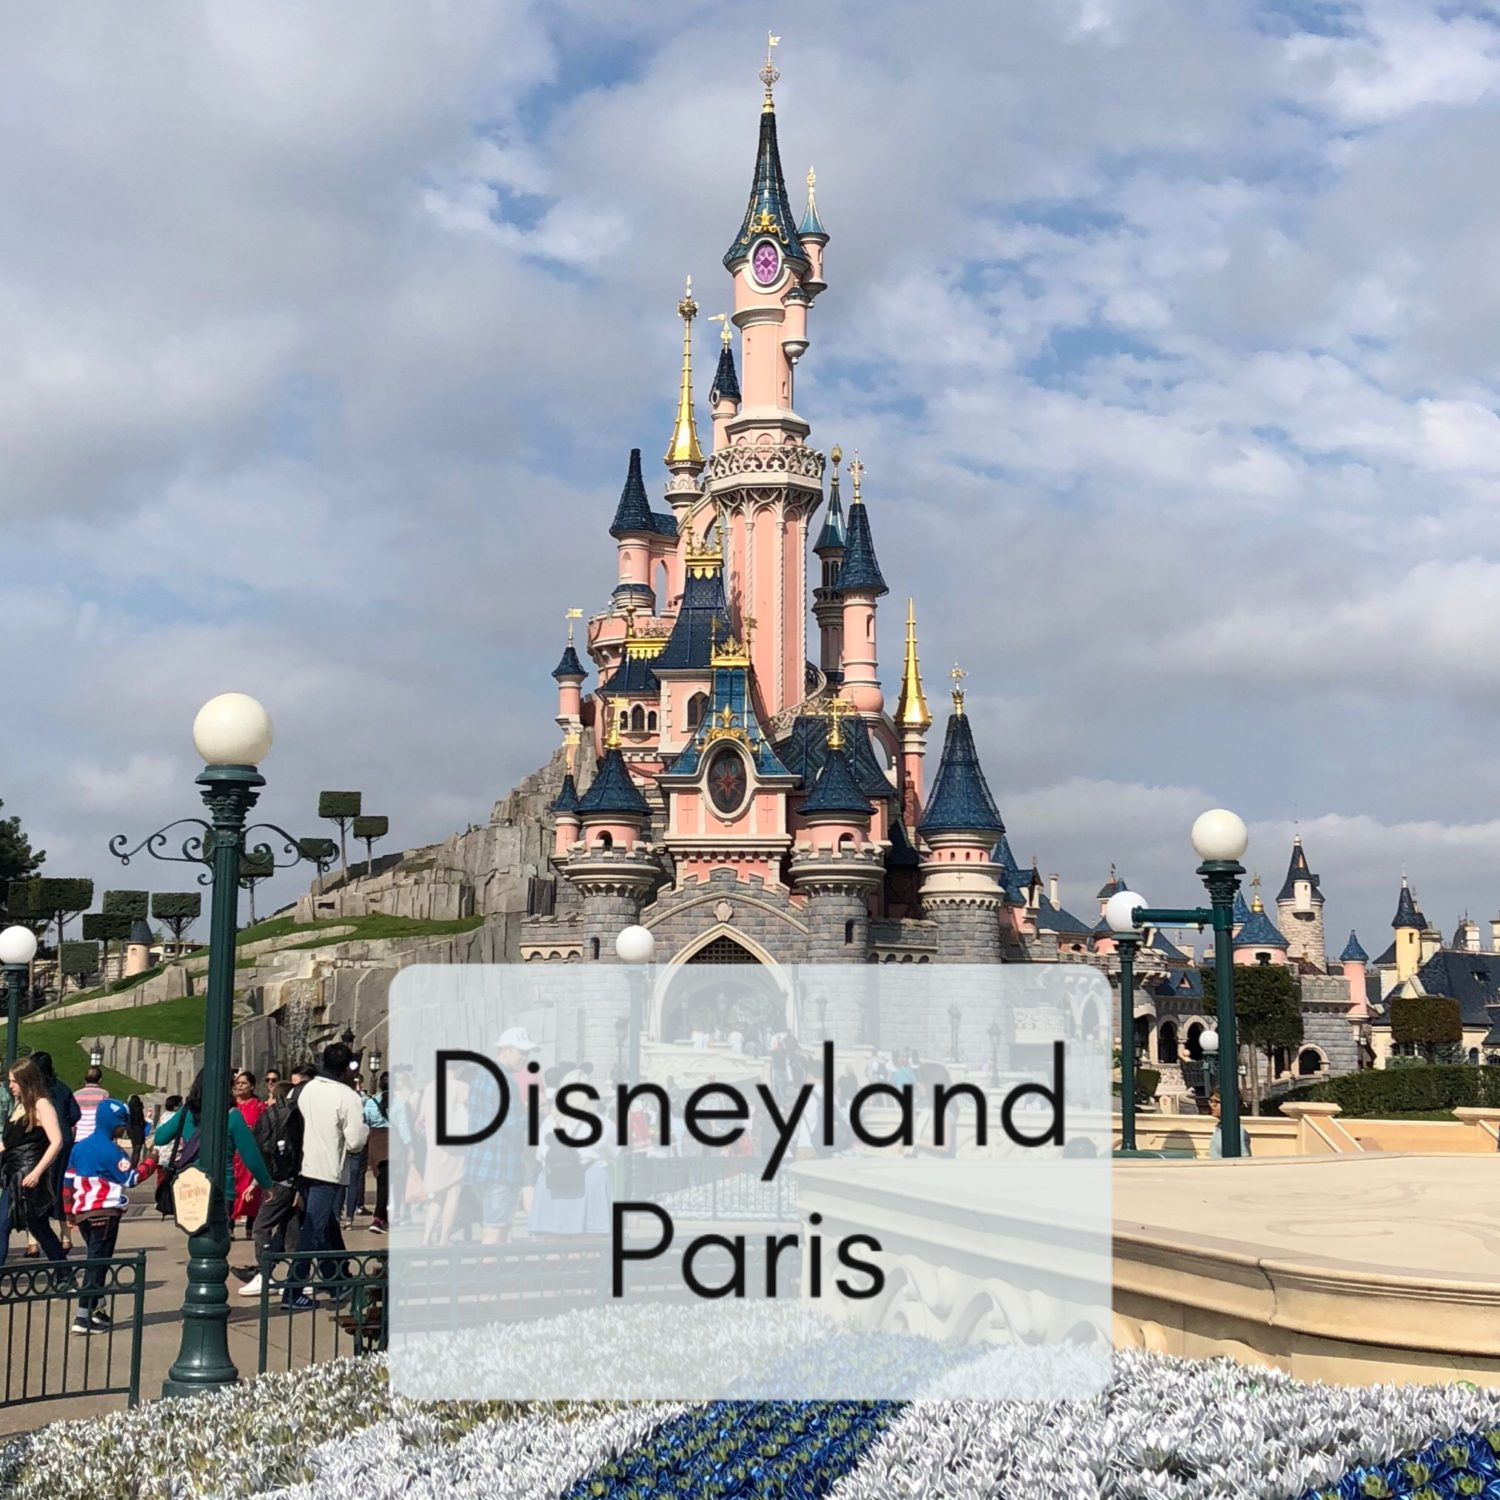 Disneyland Paris Solo: Is it worth it?